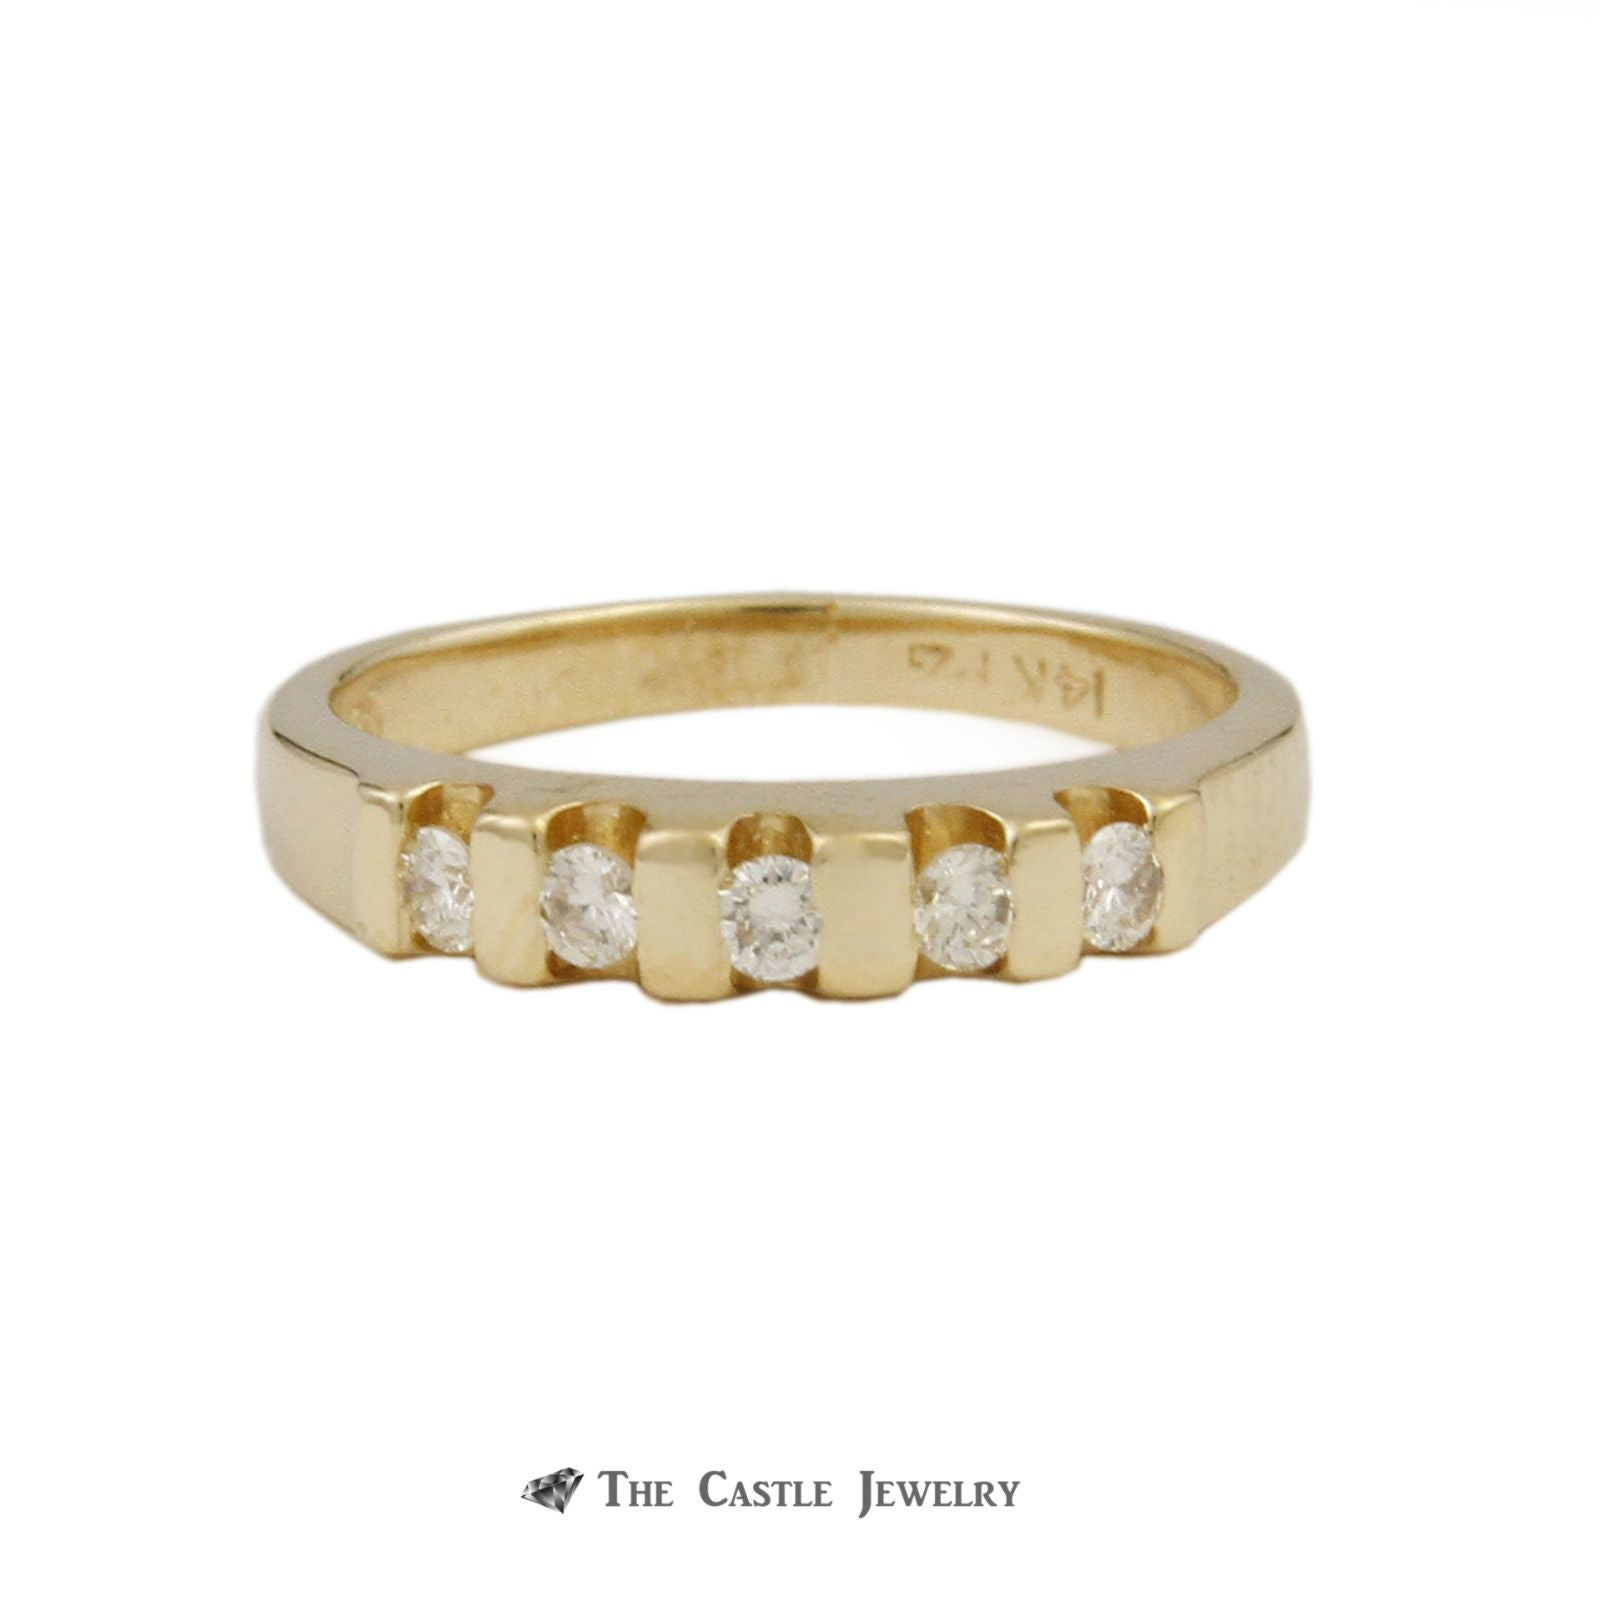 5 Round Brilliant Cut Diamond Wedding Band Crafted in 14K Yellow Gold